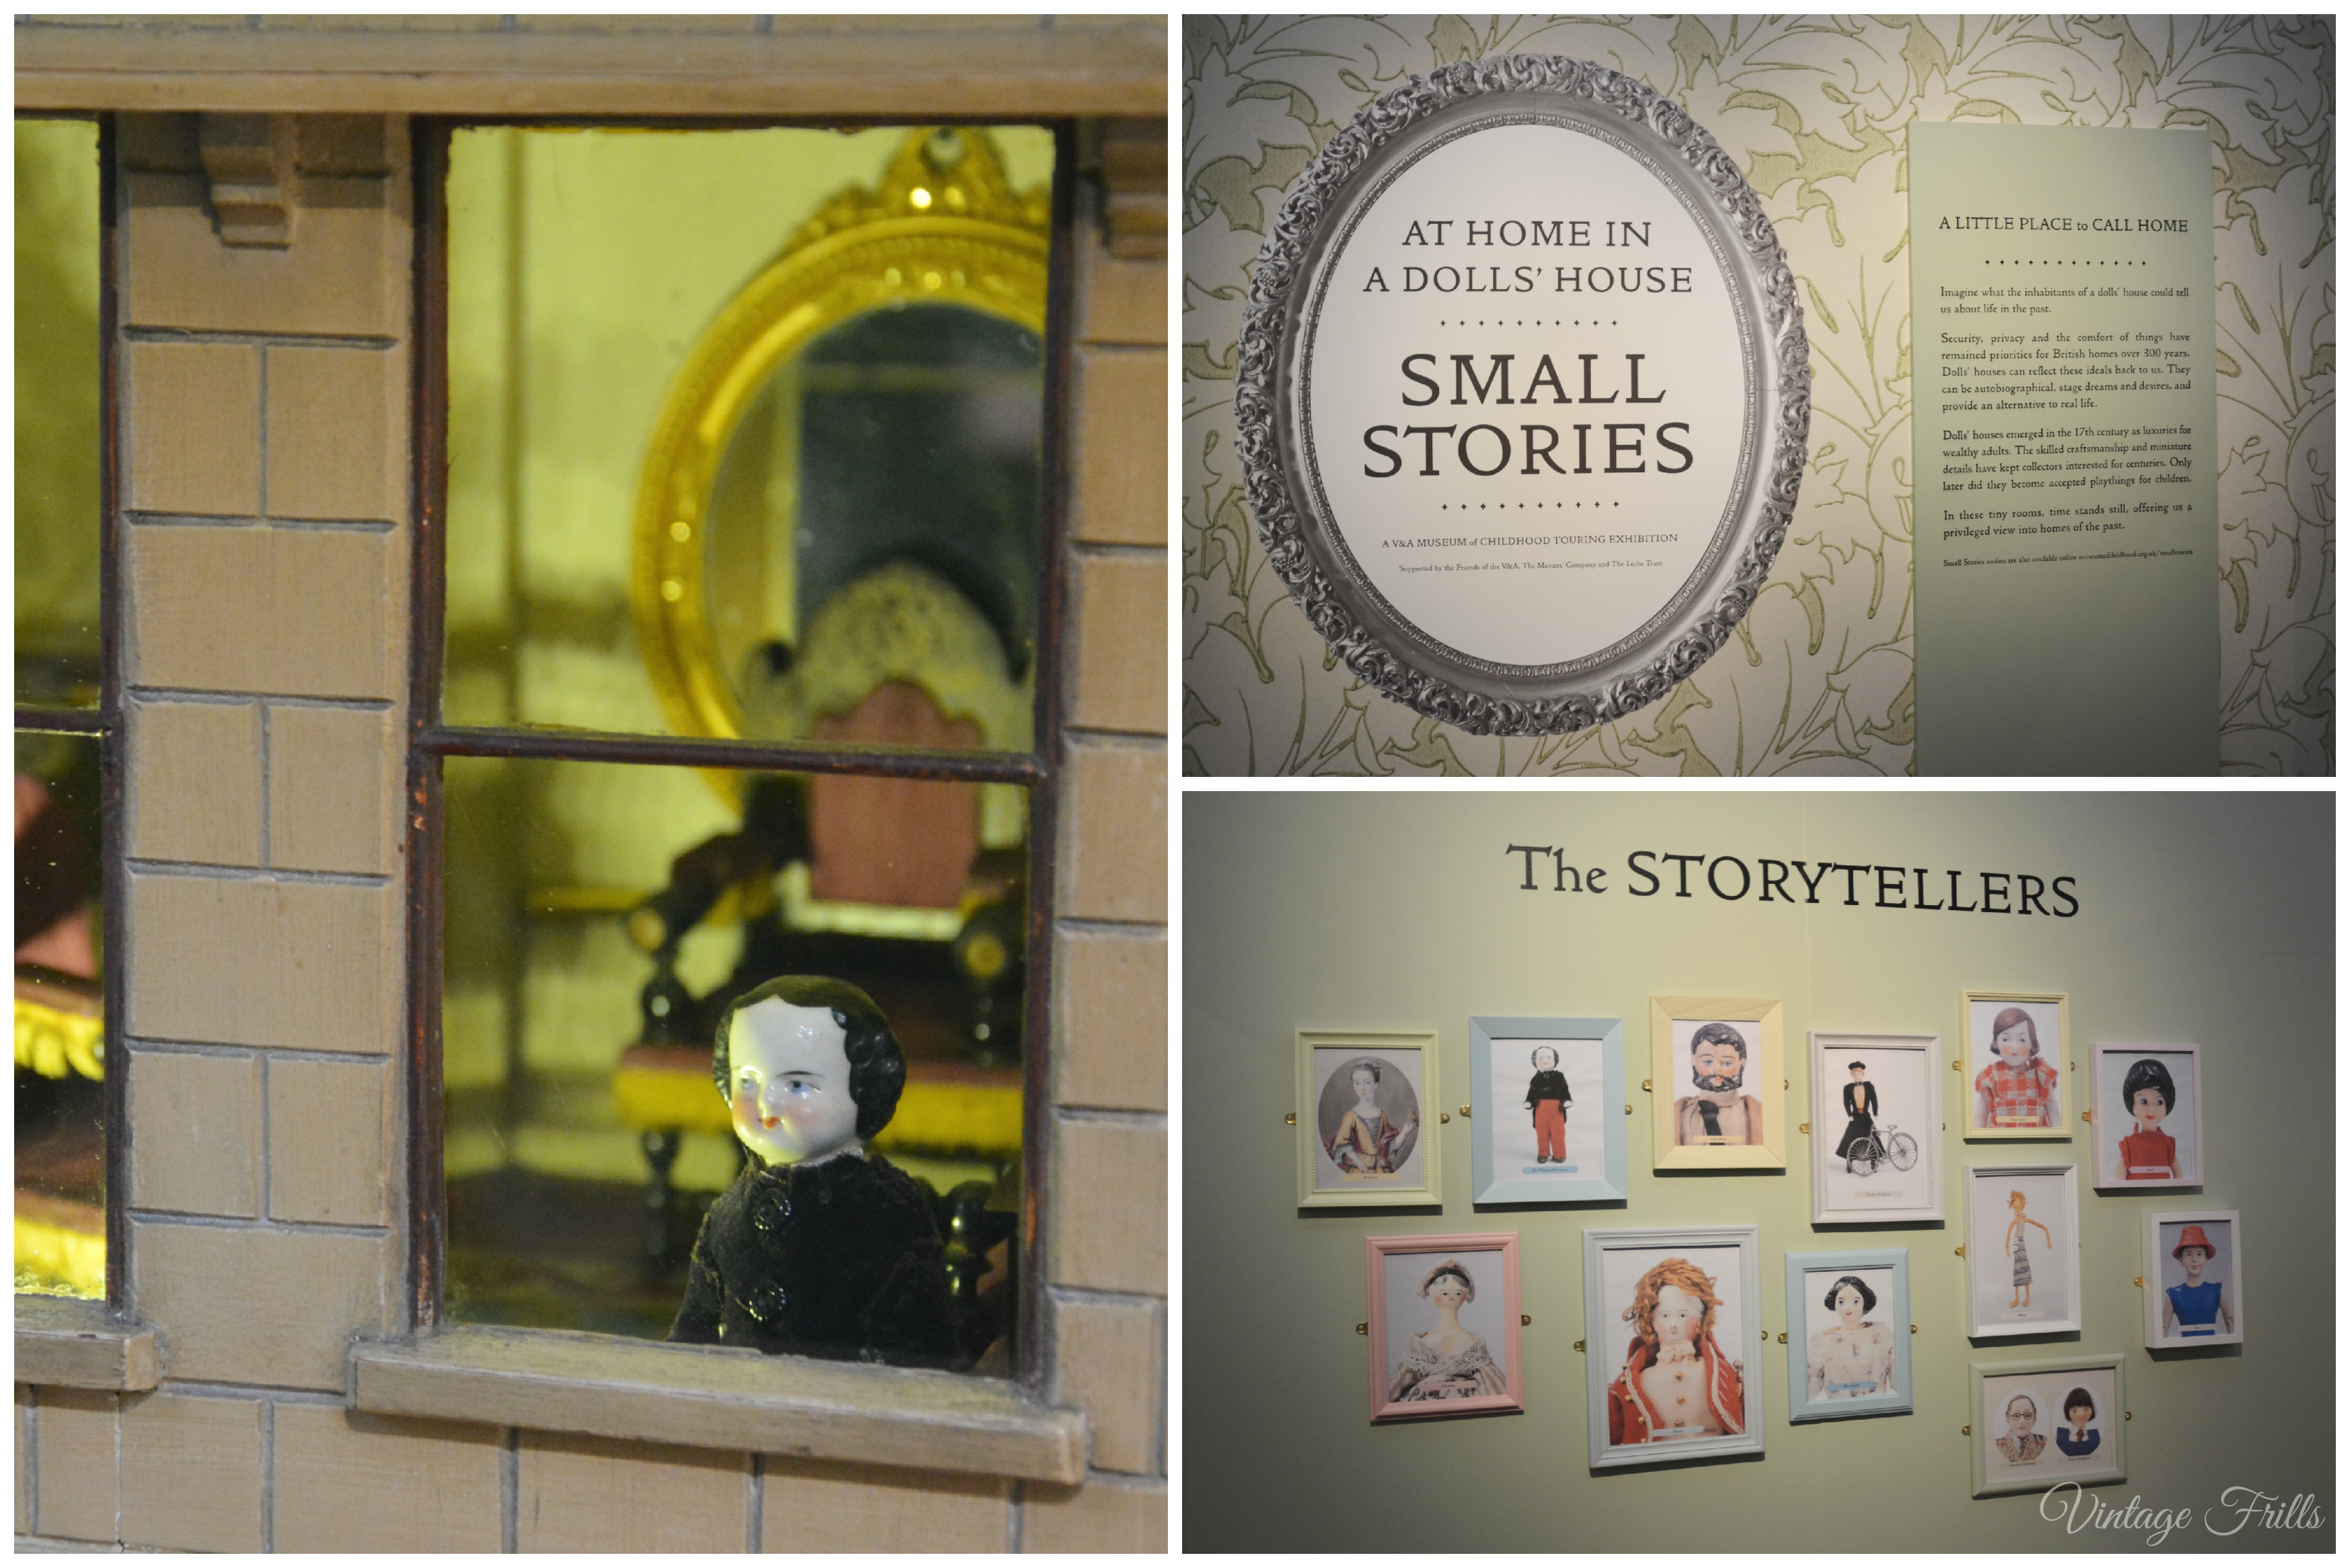 Small Stories: At Home in a Dolls' House at the Museum of Childhood